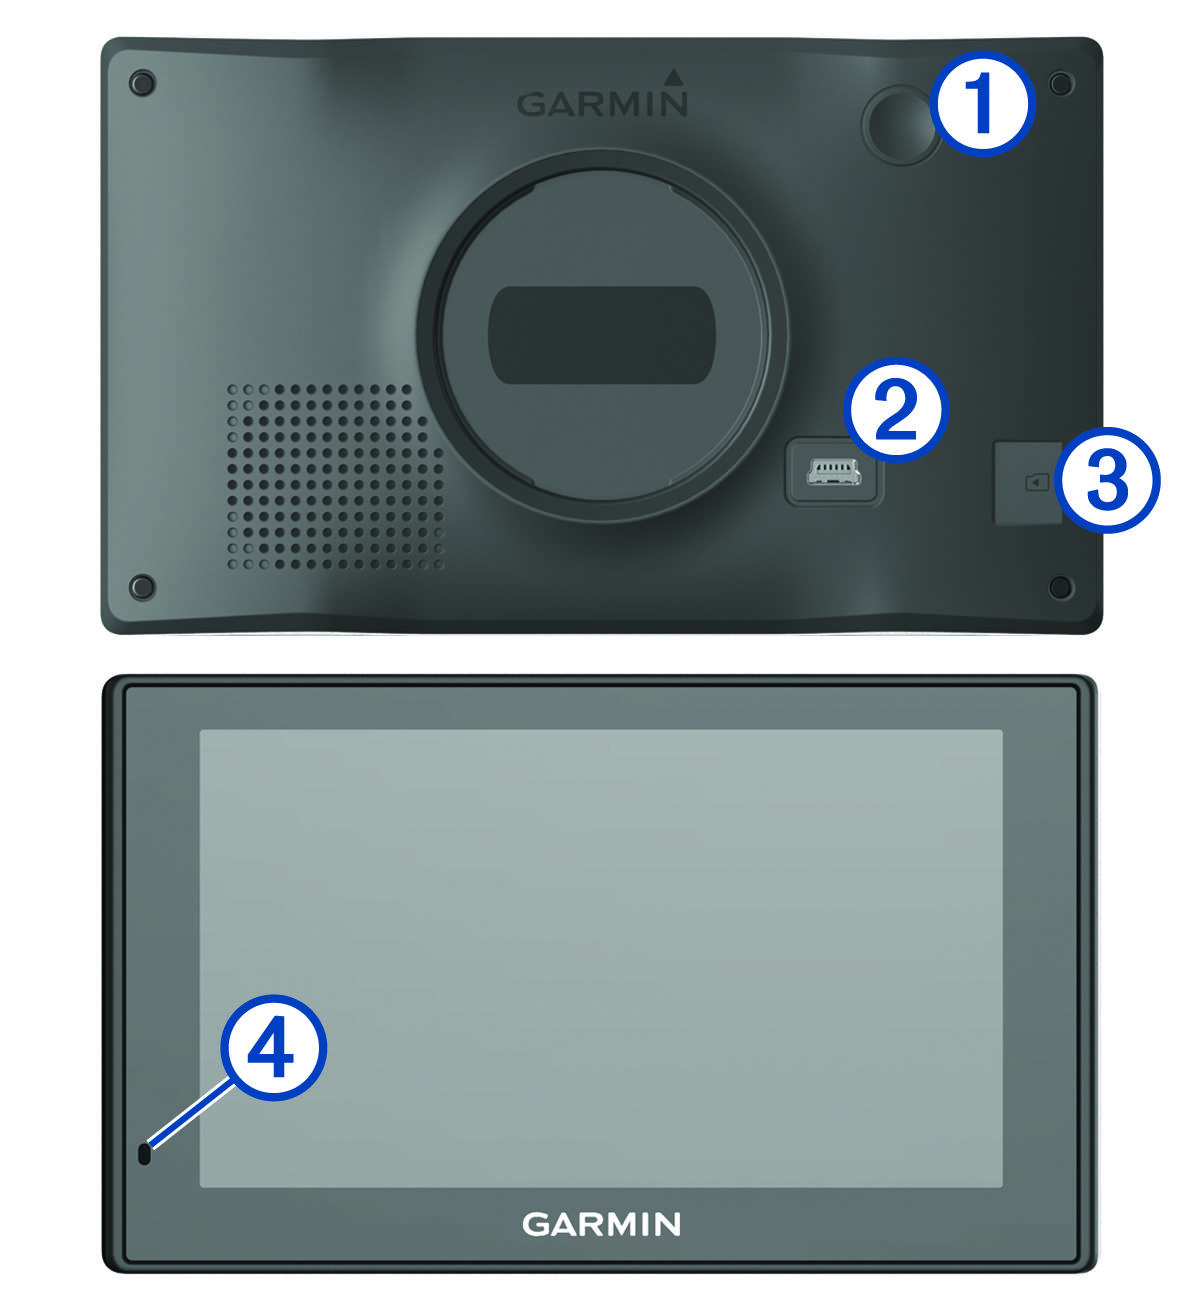 garmin drivesmart 51 61 7 garmin drivesmart 51 device. Black Bedroom Furniture Sets. Home Design Ideas